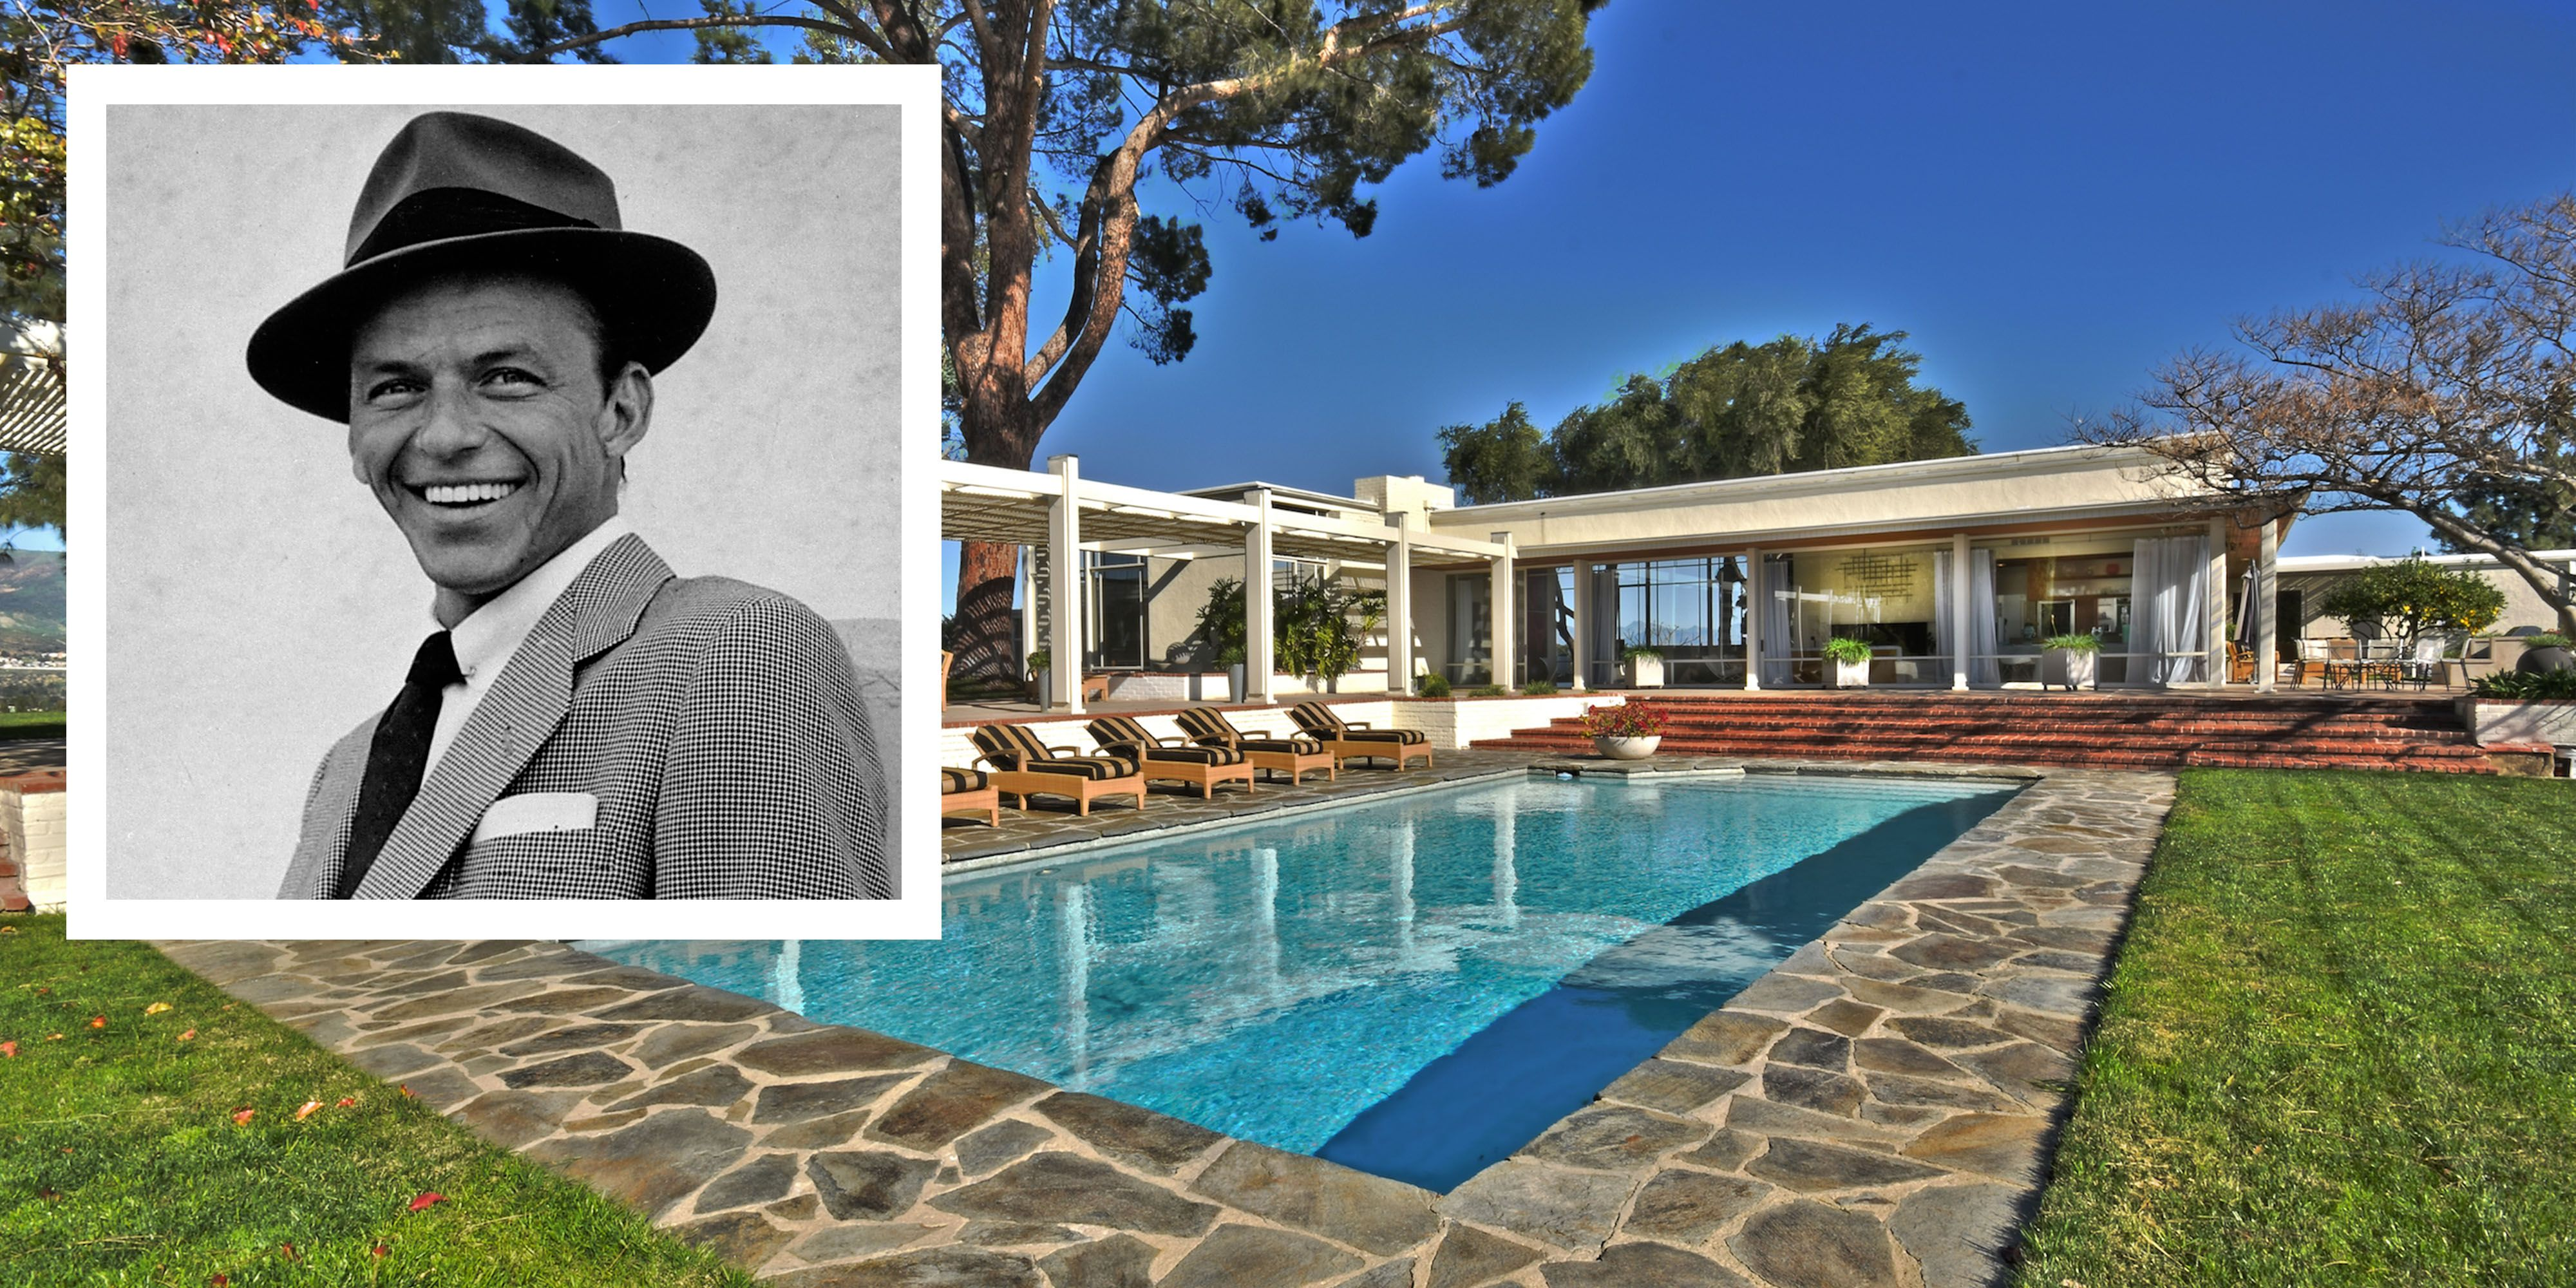 Frank Sinatra's Legendary Byrdview L.A. Estate Hits the Market for $12.5 Million